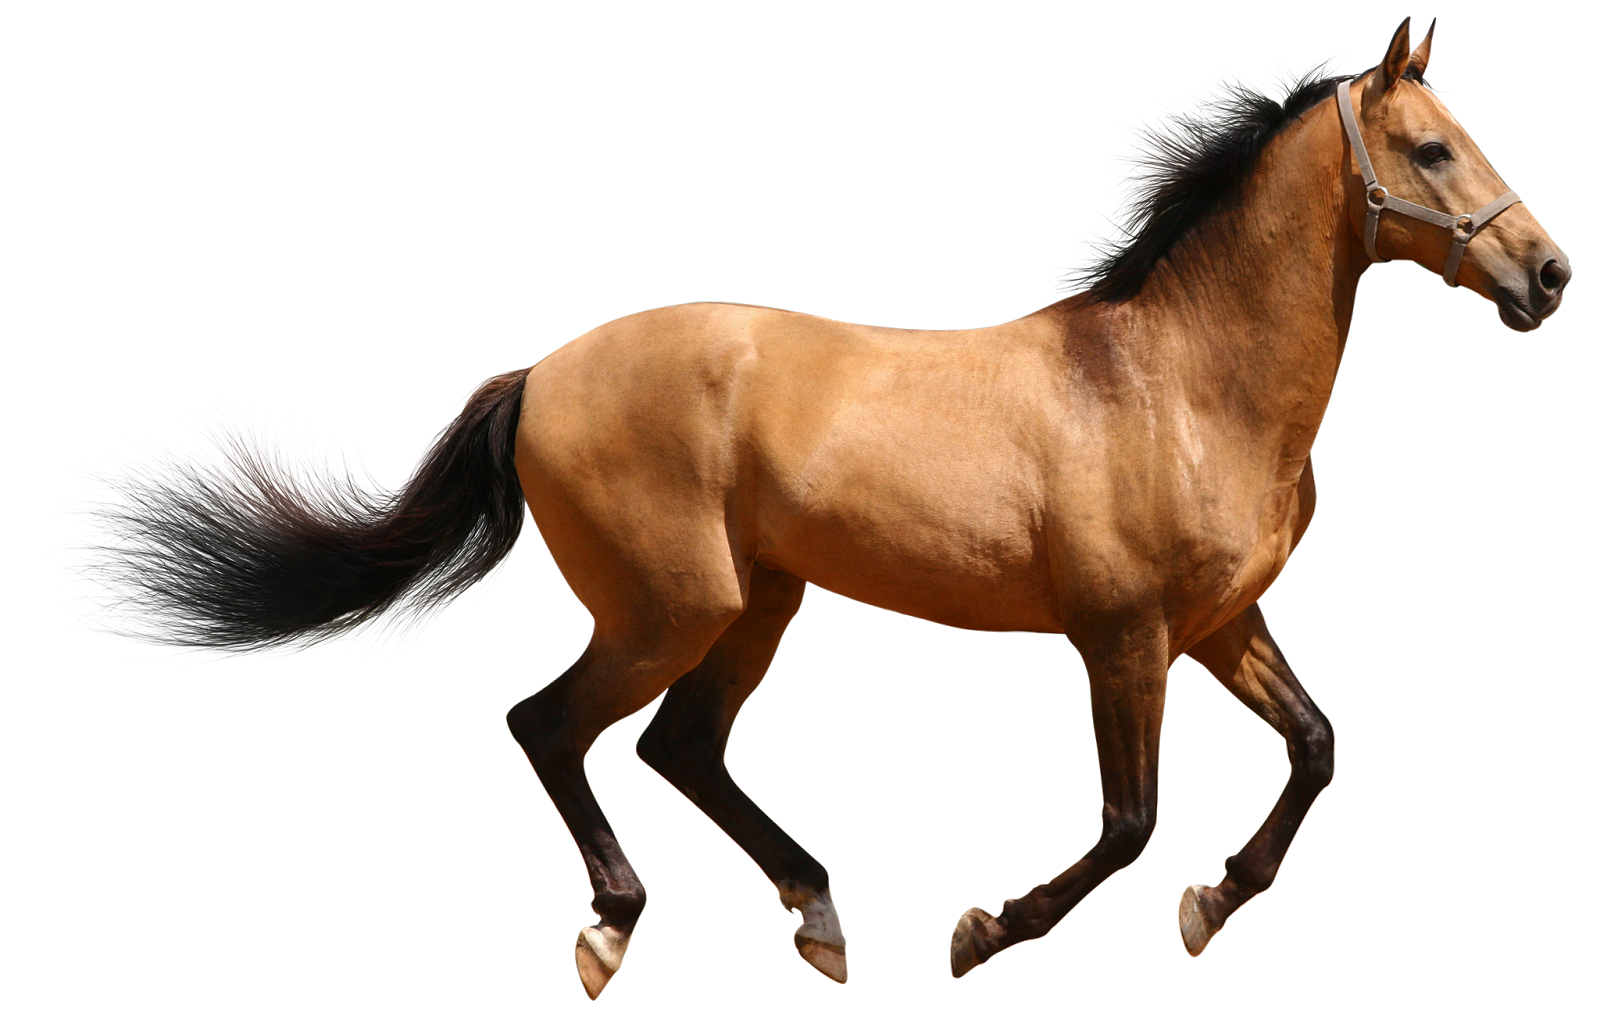 Horse 3d Animal Png image #22321 - Animal PNG - Animal HD PNG - Real Animal PNG